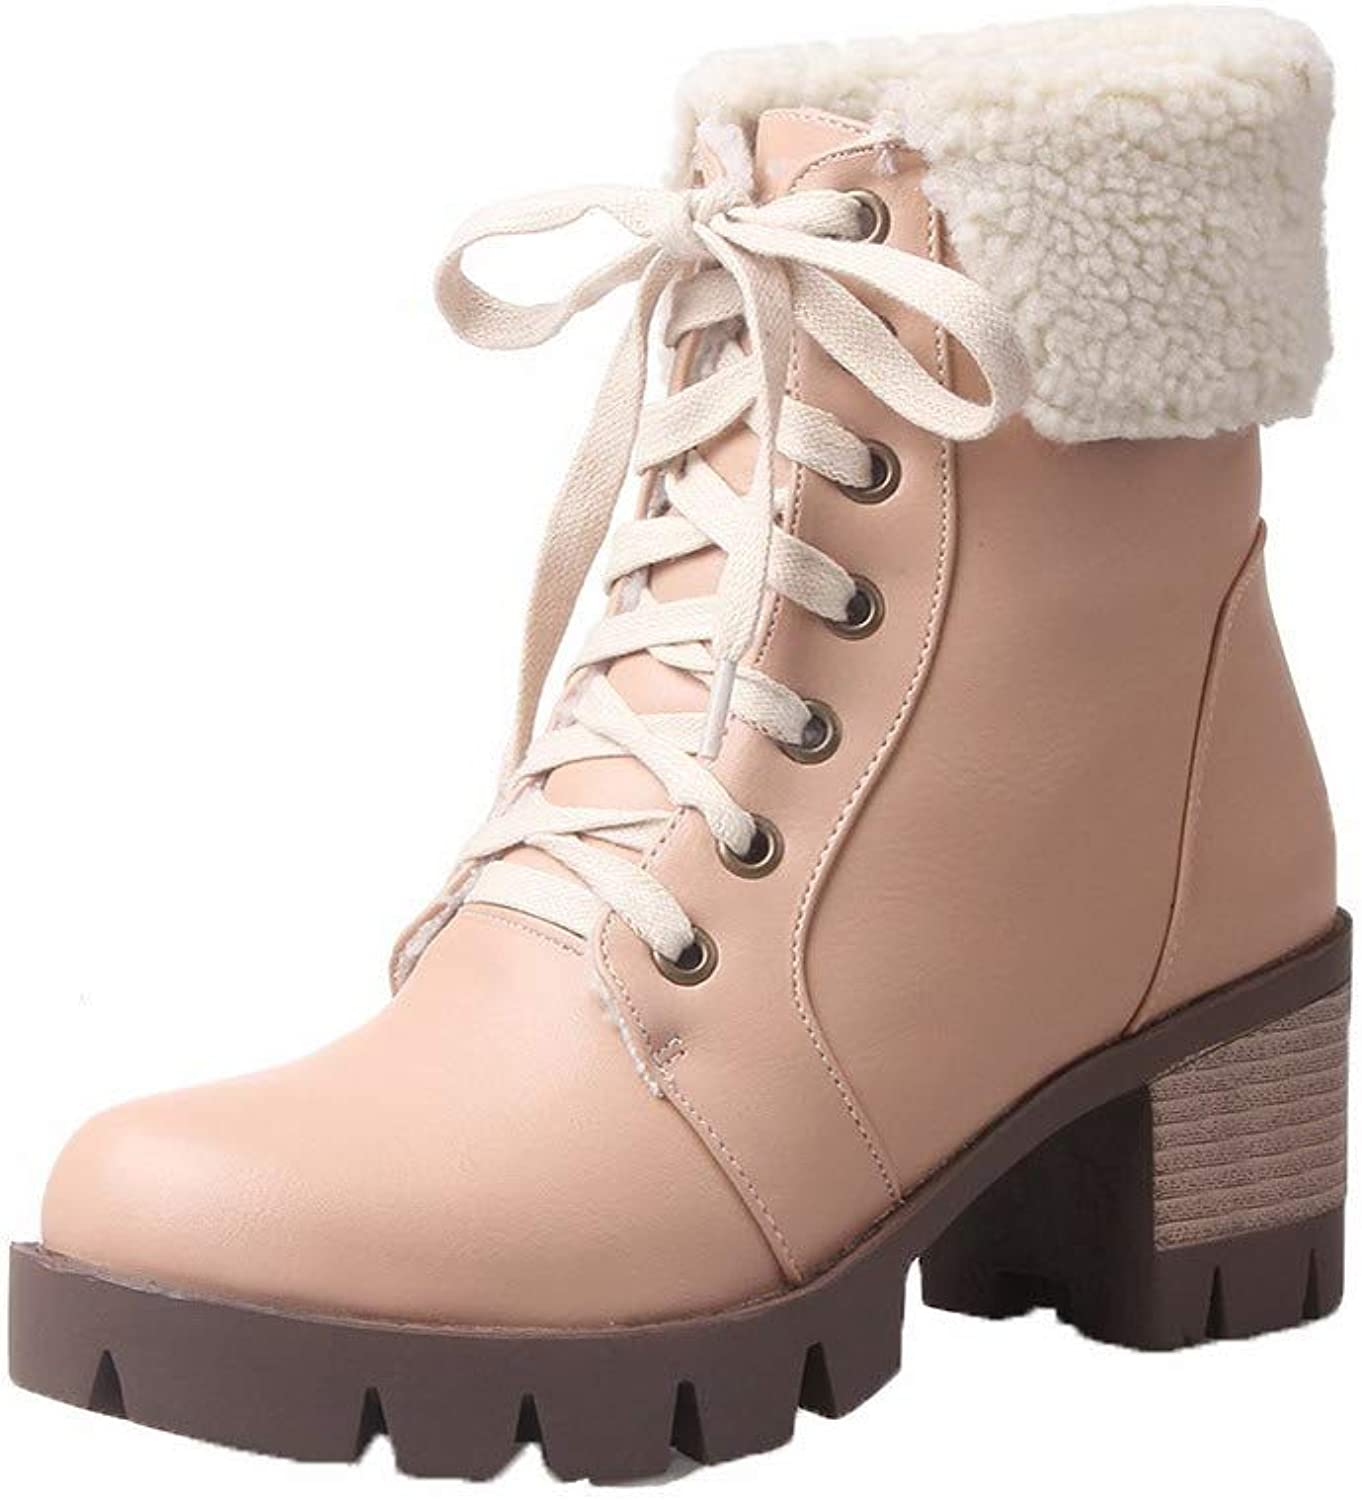 WeiPoot Women's Kitten-Heels Pu Low-Top Solid Lace-Up Boots, EGHXH114957